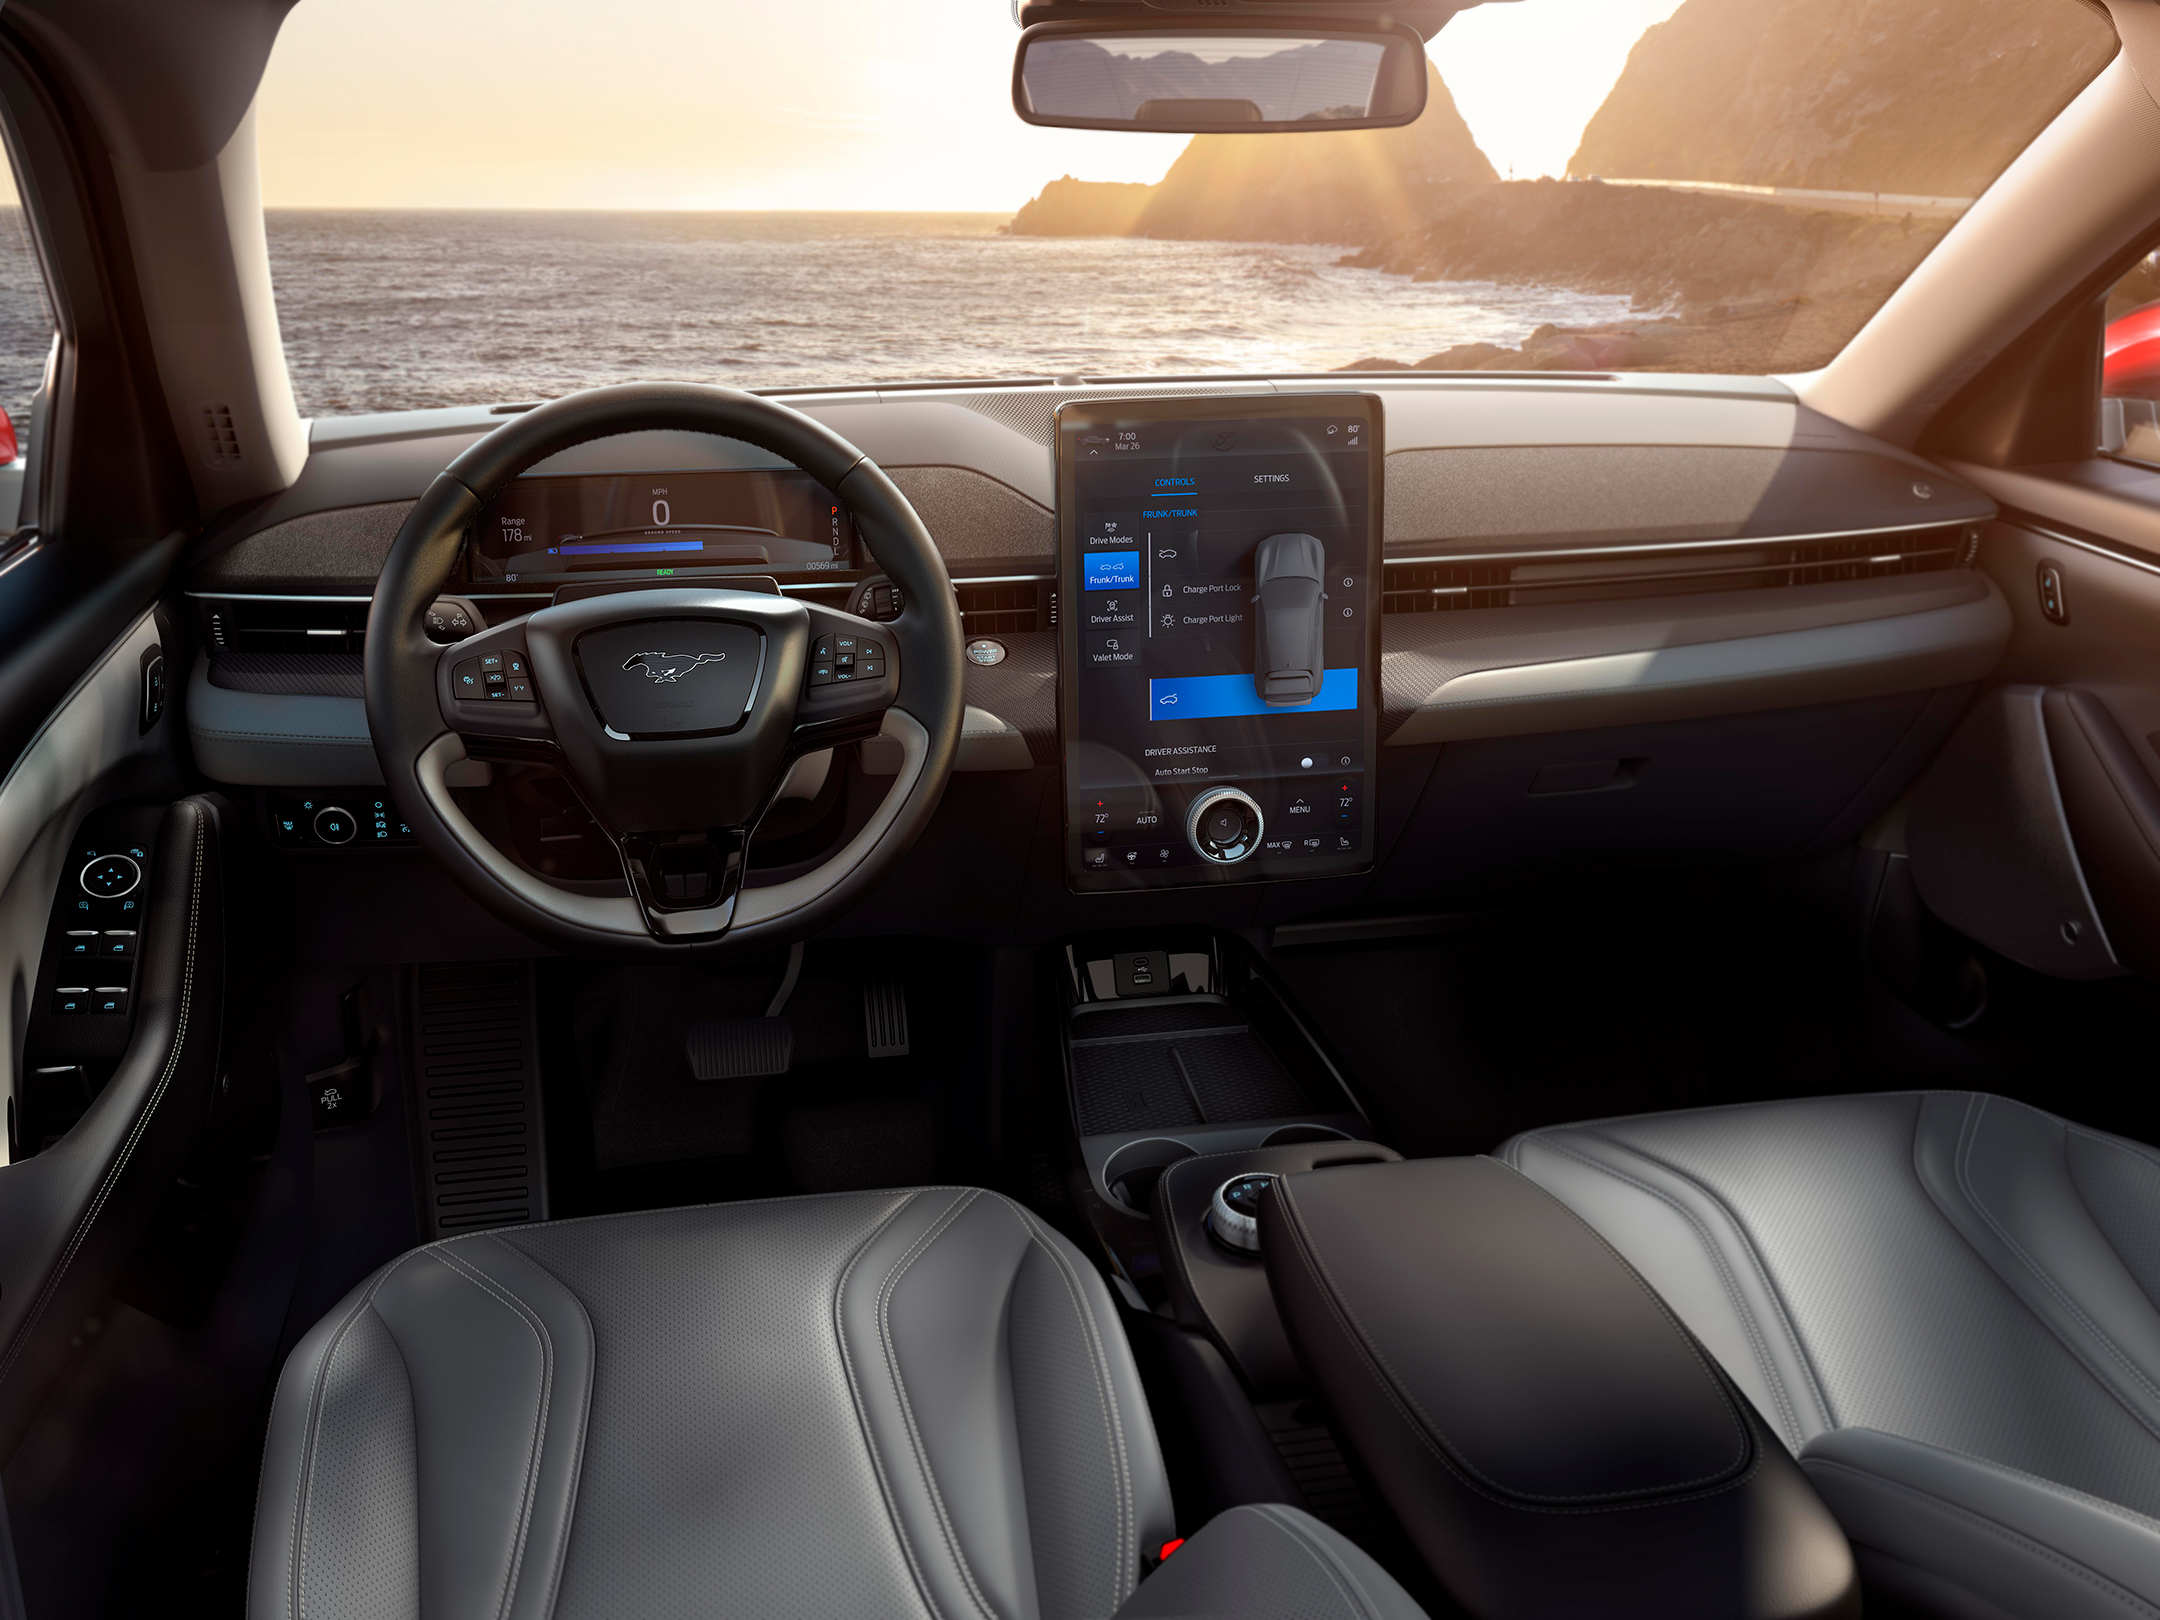 Ford Mustang Mach-E - 2019 - interior / intérieur